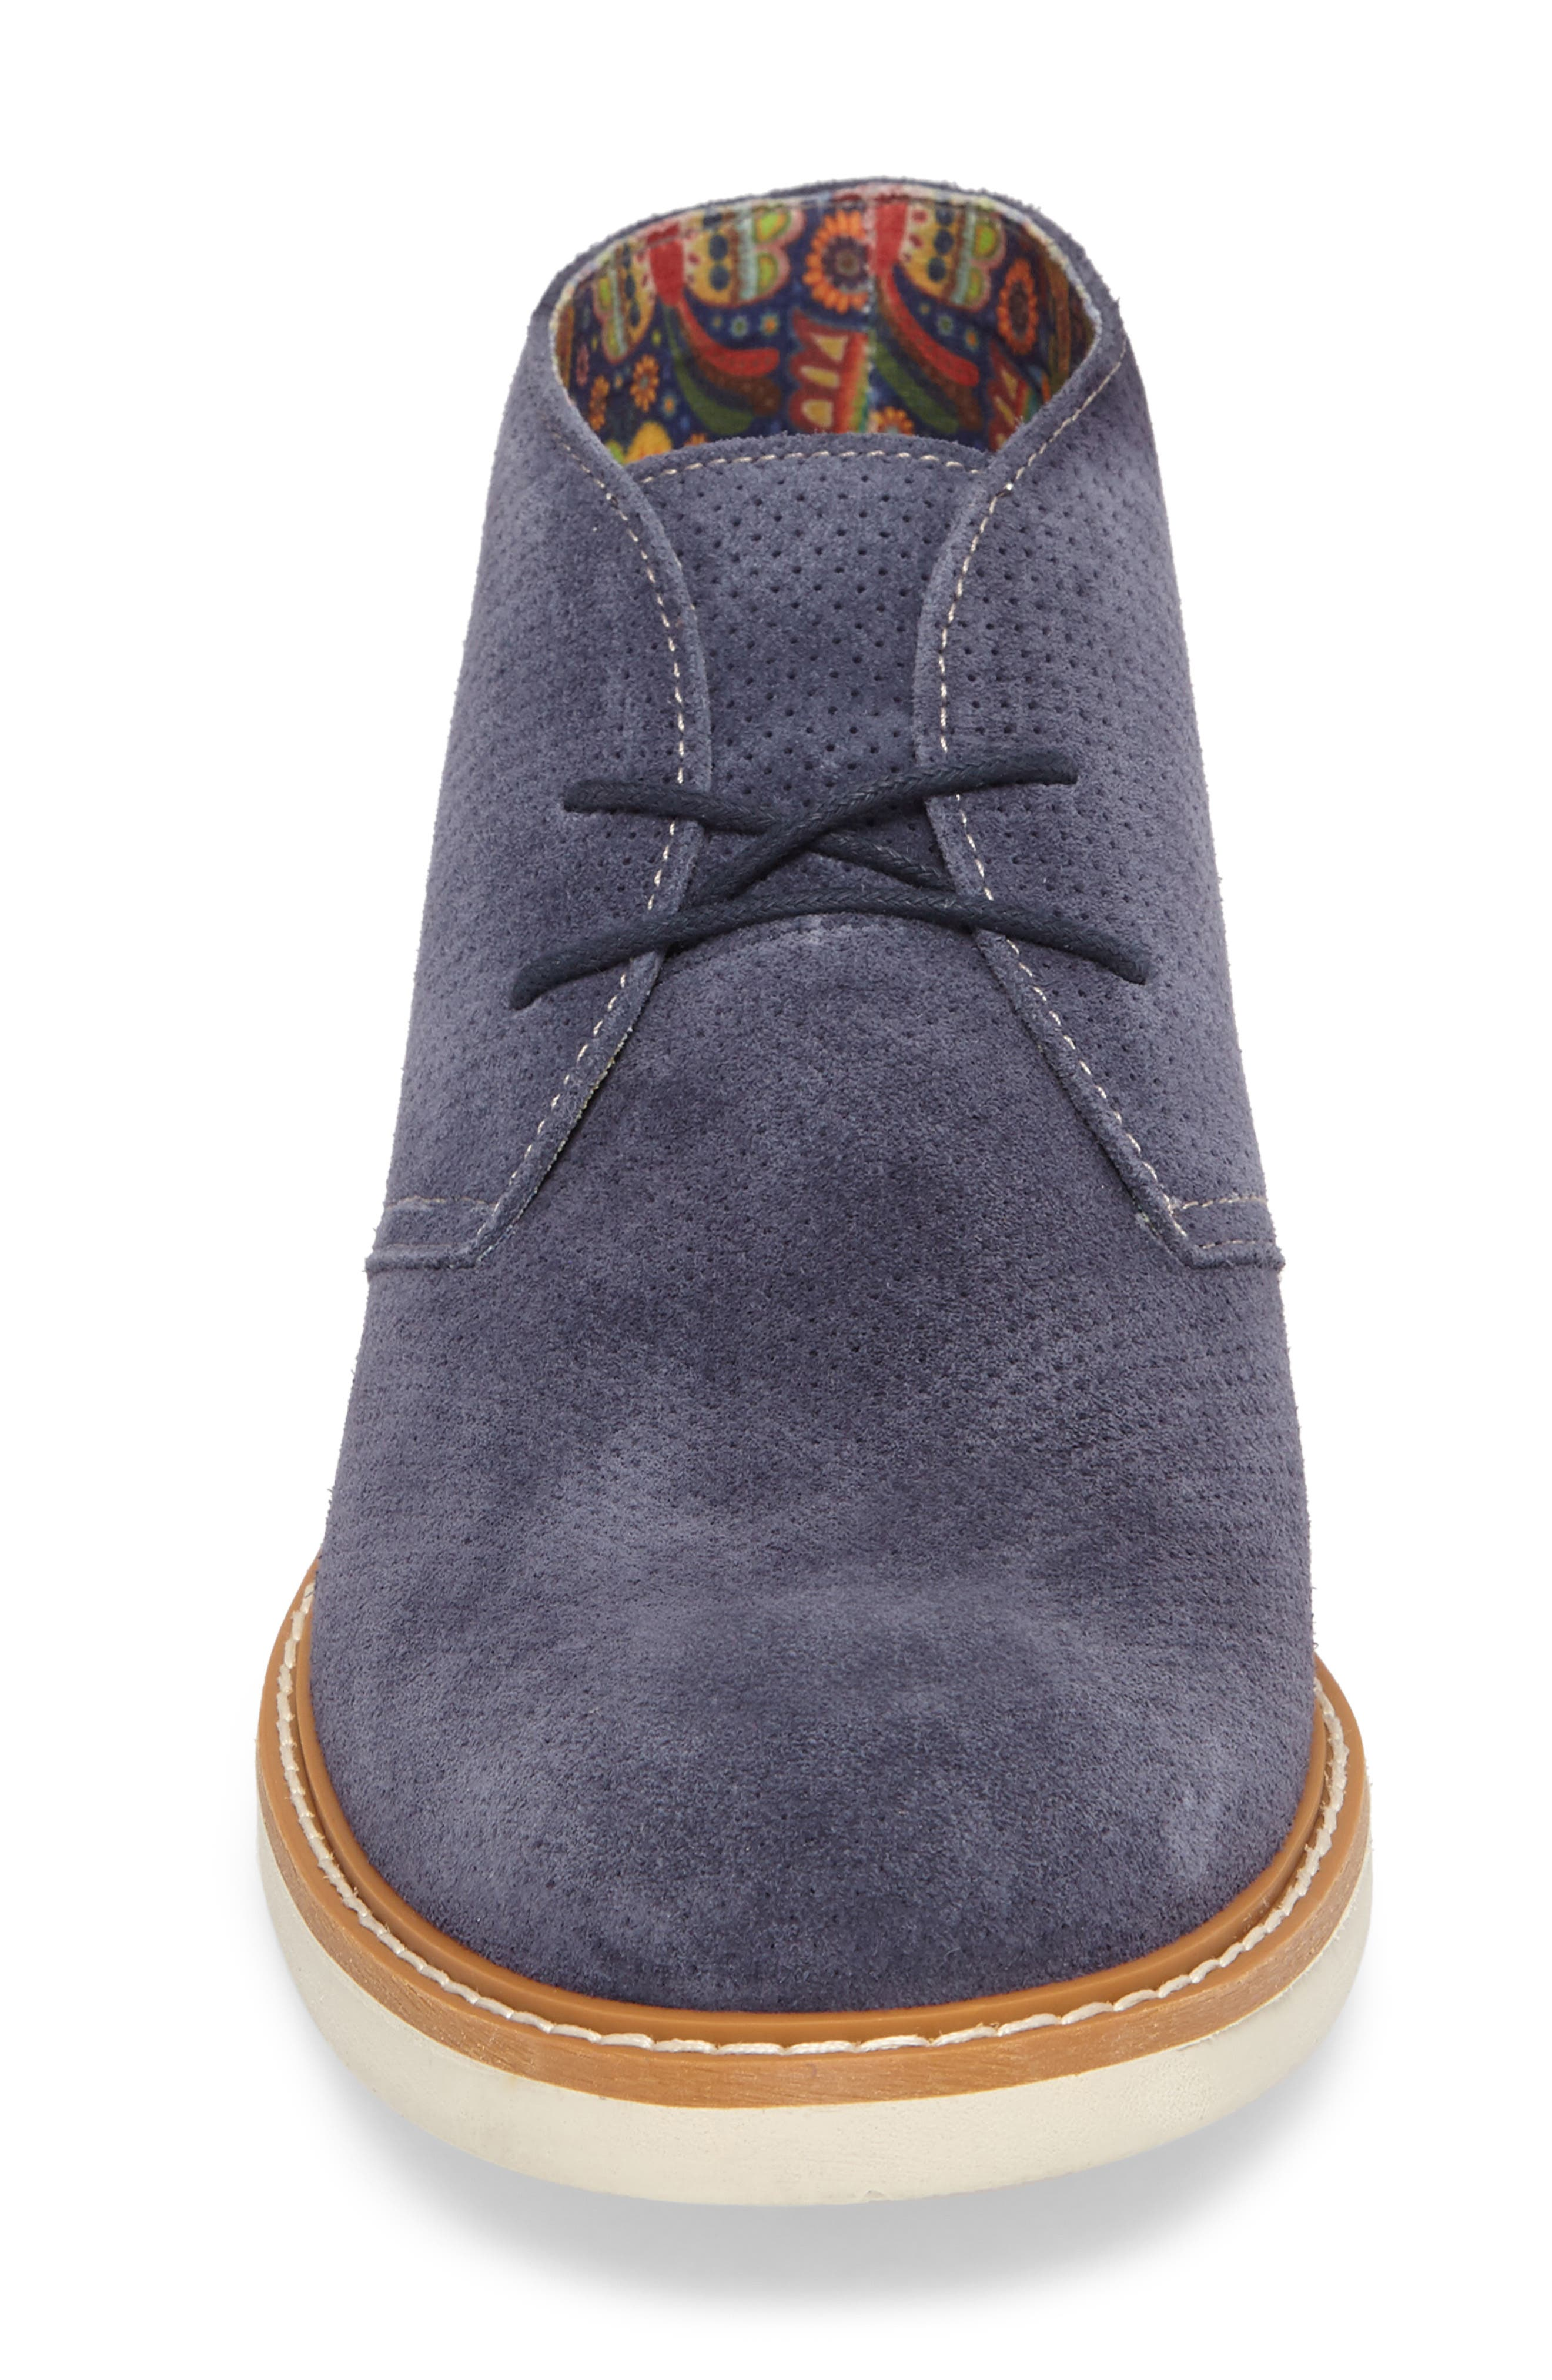 Bayside Perforated Chukka Boot,                             Alternate thumbnail 4, color,                             Blue Suede